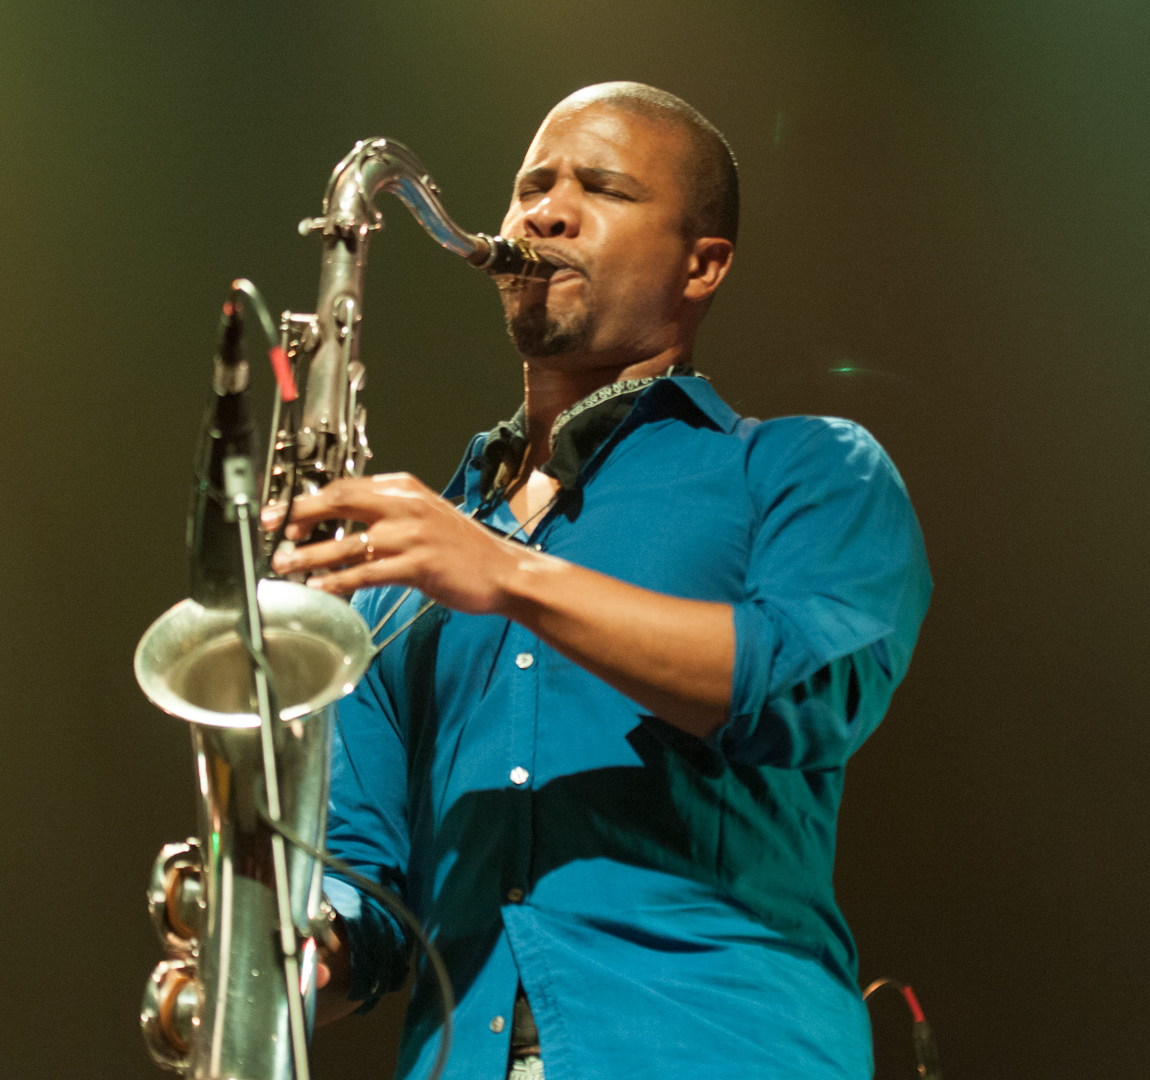 David Sanchez with Ninety Miles at the Montreal International Jazz Festival 2012